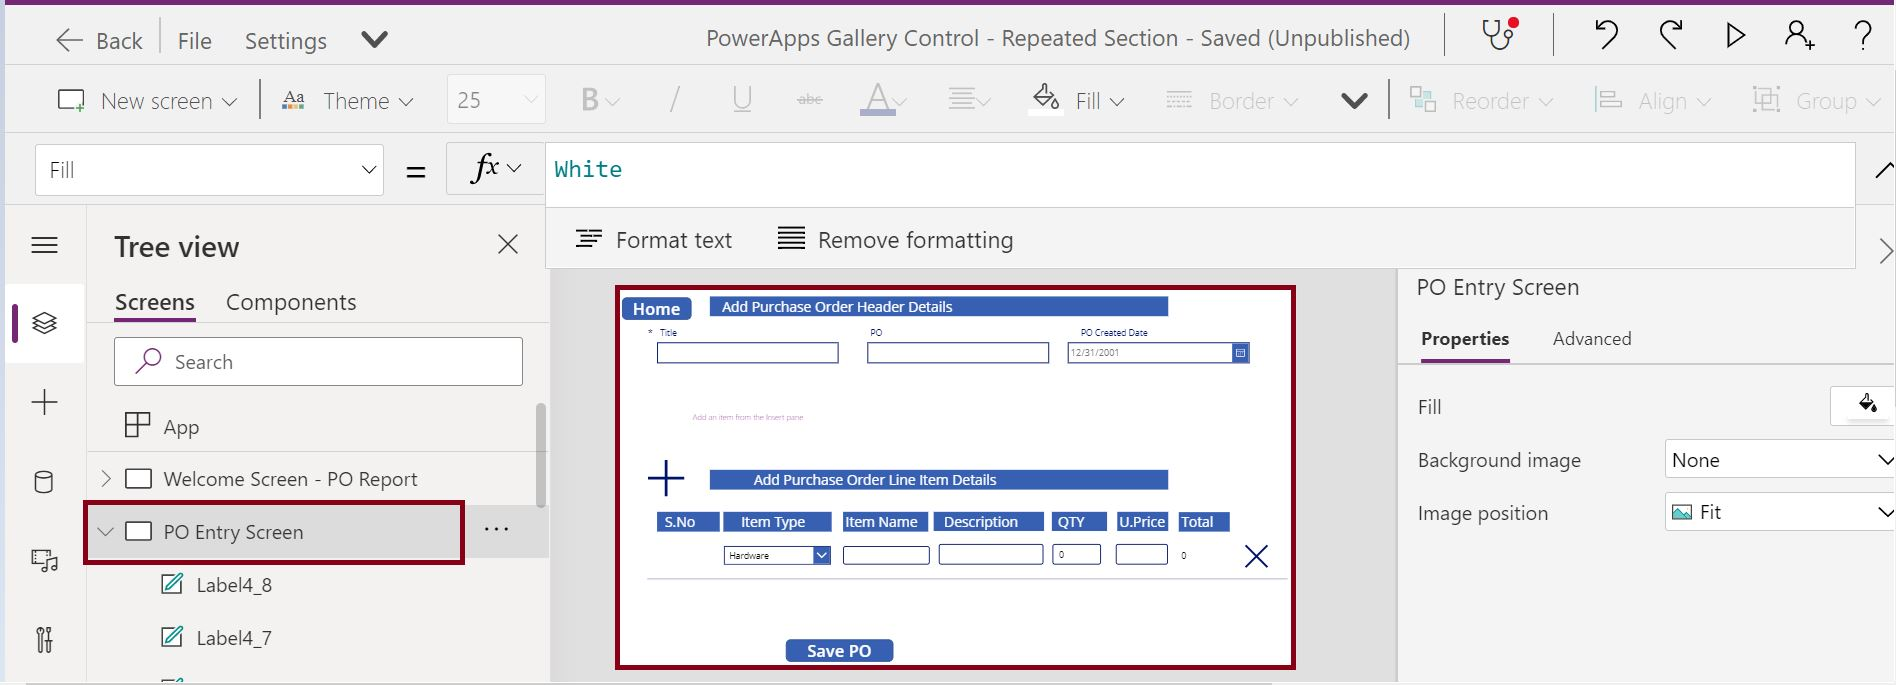 Purchase order table design in PowerApps